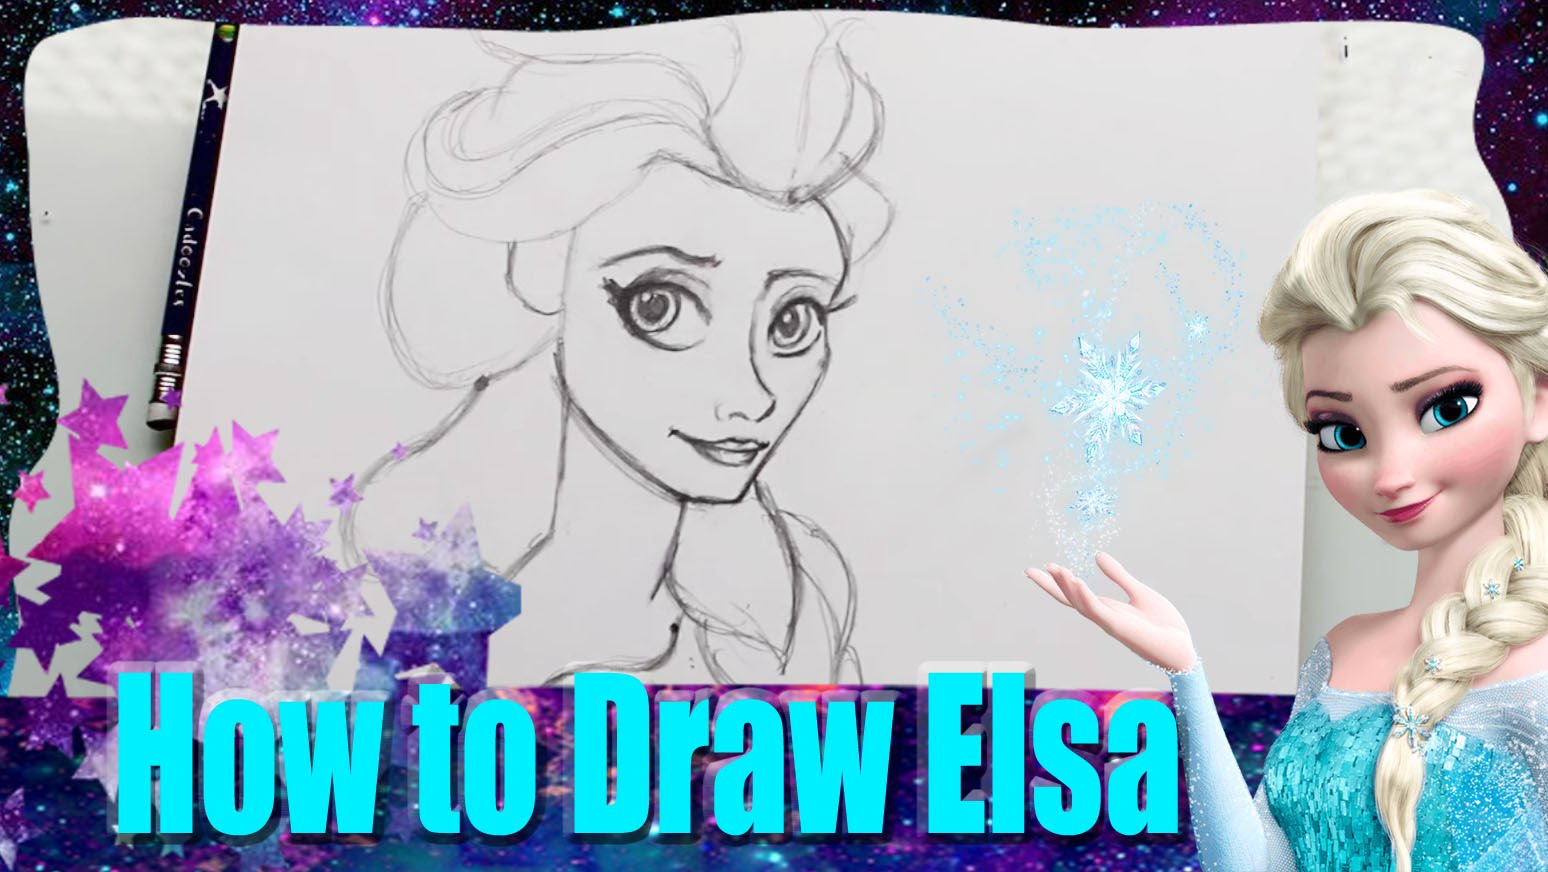 Frozen Drawing Elsa at GetDrawings.com | Free for personal use ...